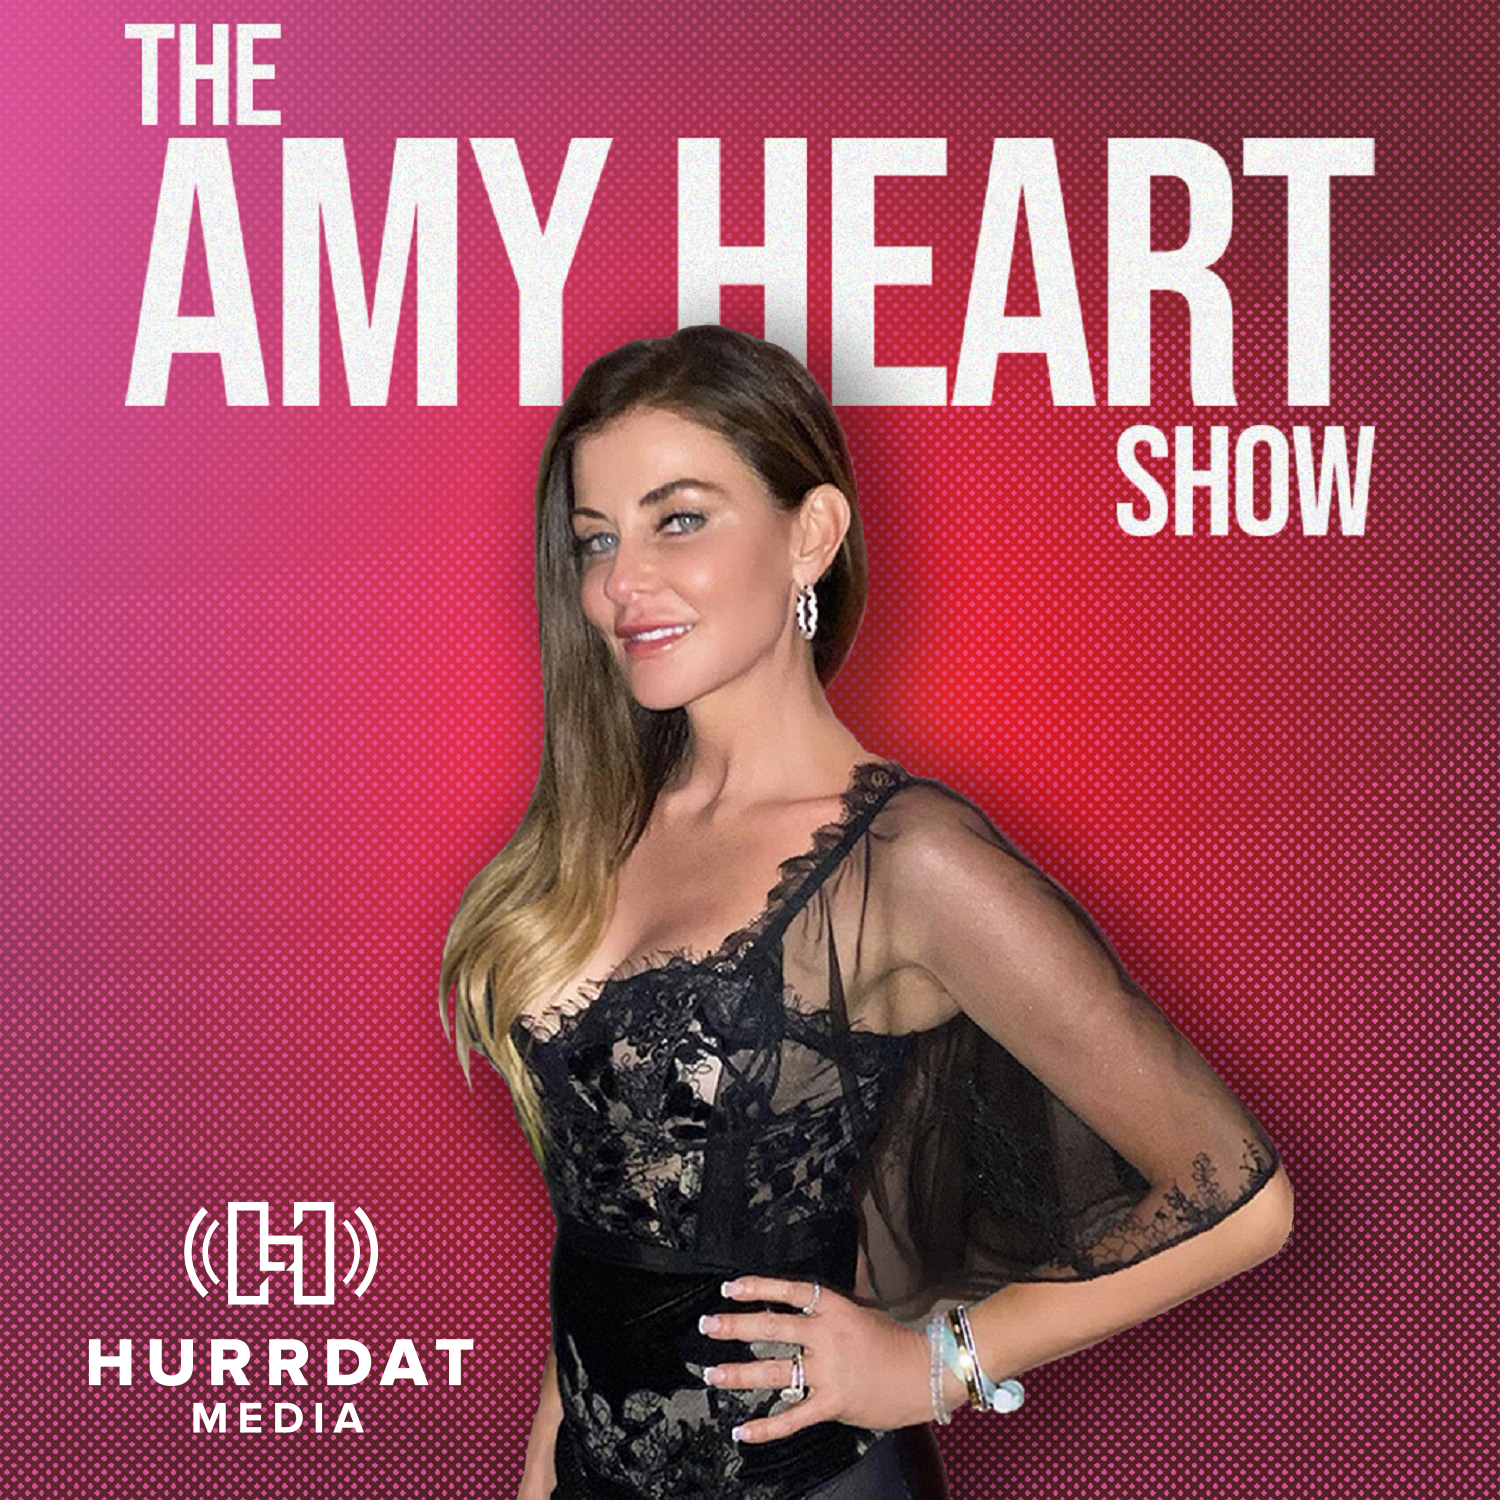 The Amy Heart Show show art